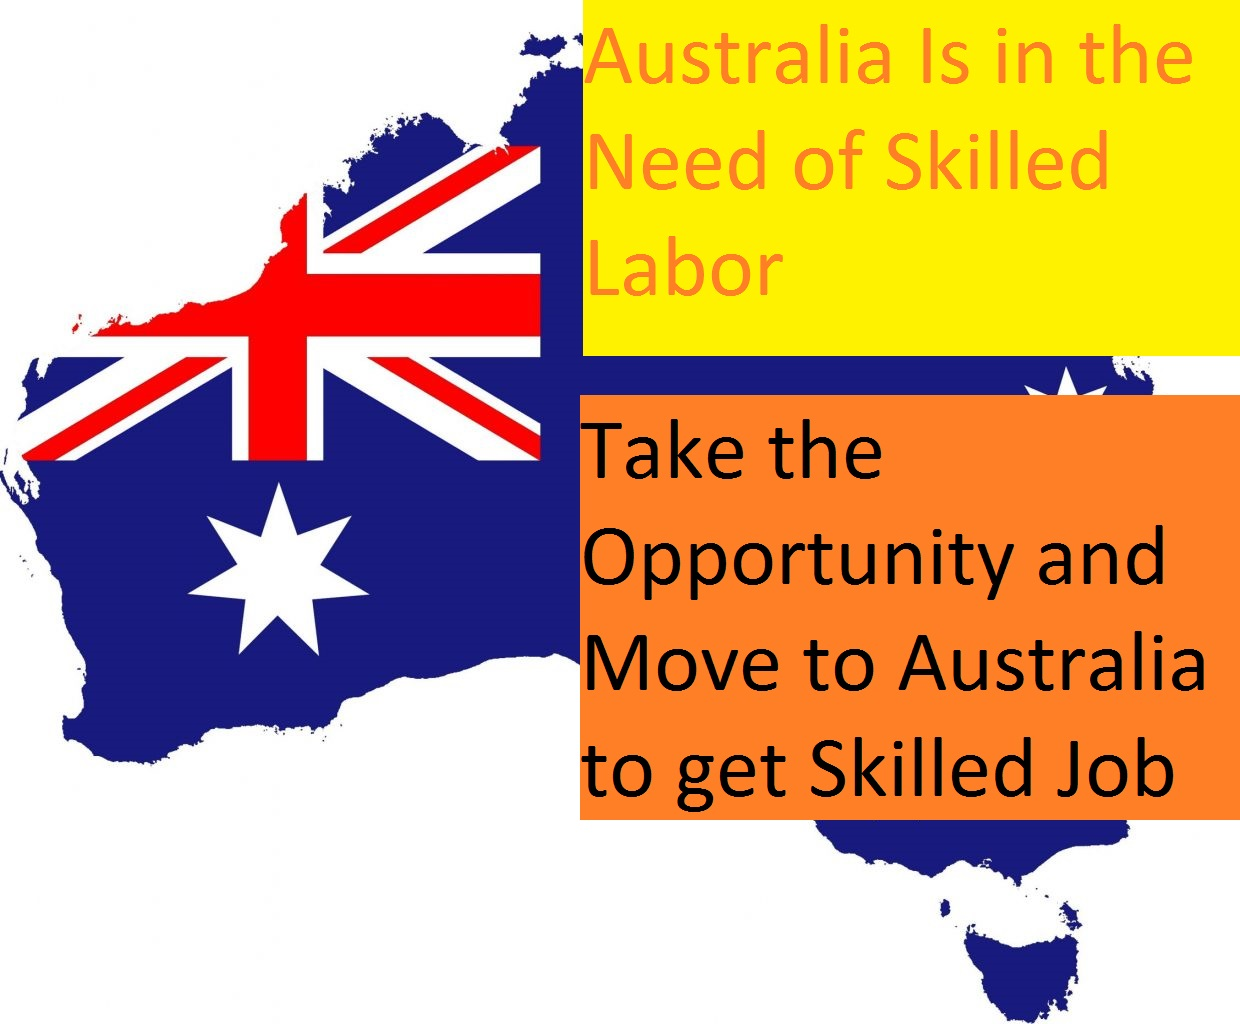 Top Jobs that are in Demand in Australia- Read to Know More